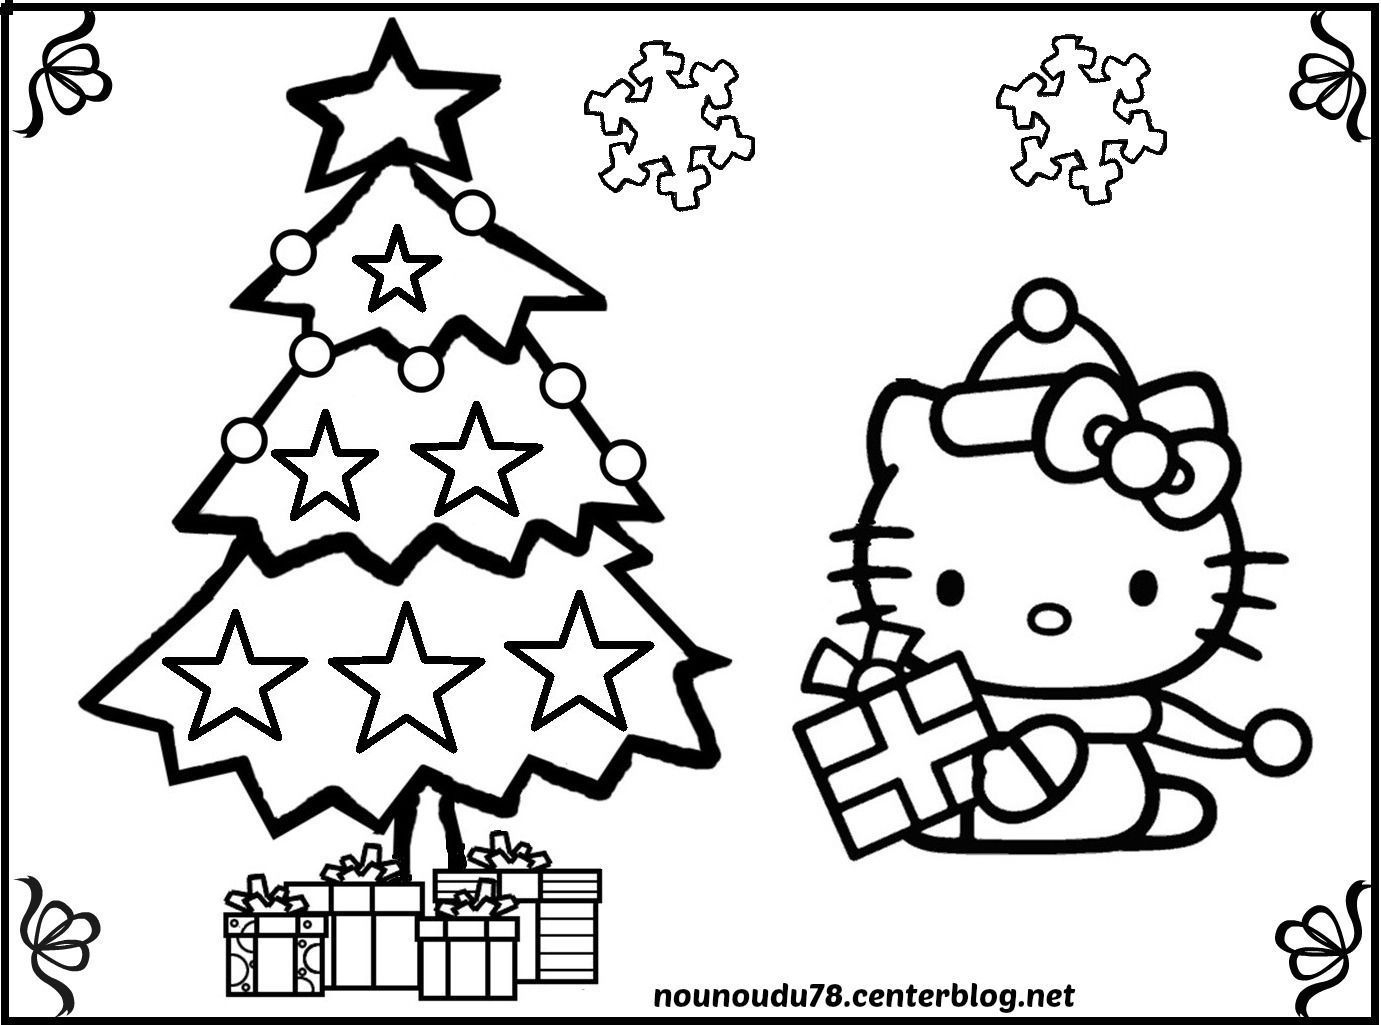 Dessin Traineau Avec Sapin De Noel | Search Results dedans Dessin À Imprimer Hello Kitty